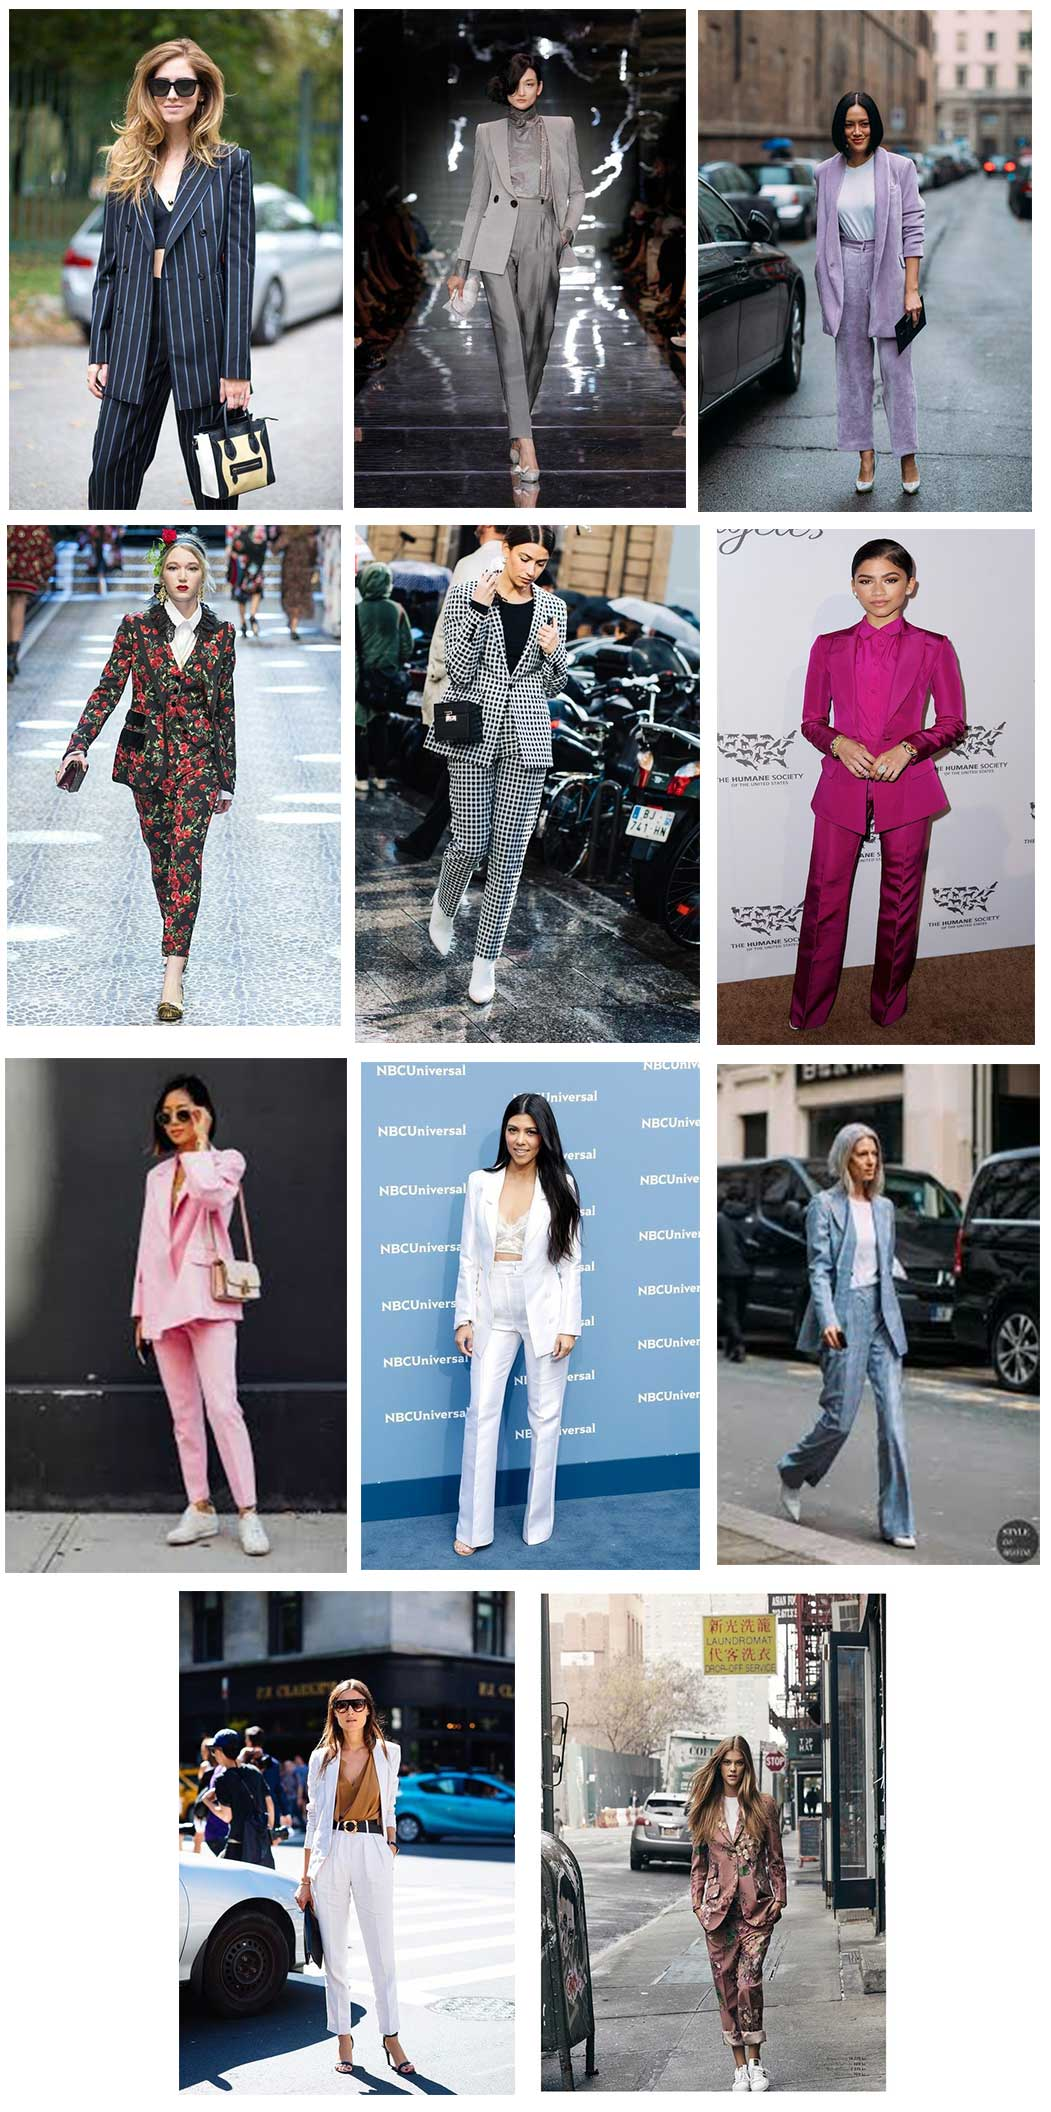 Crossing gender barrier crossing gender barrier - Trend spotlightb - Crossing gender barrier – Celebration of Power suit